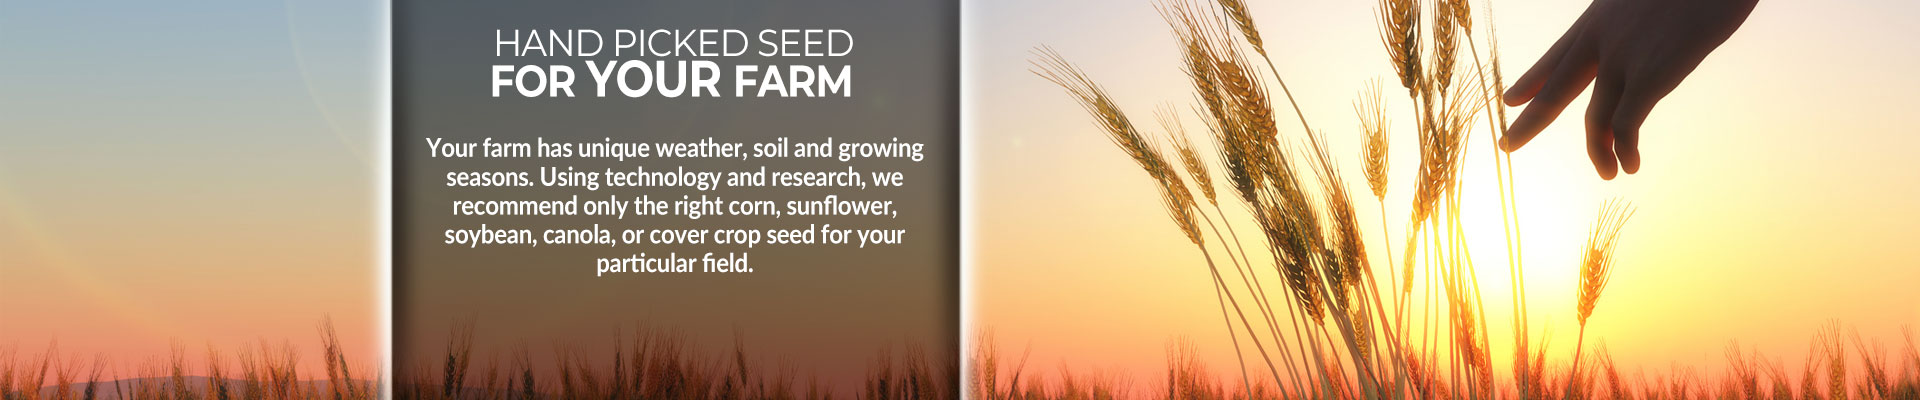 Hand picked seed for your farm